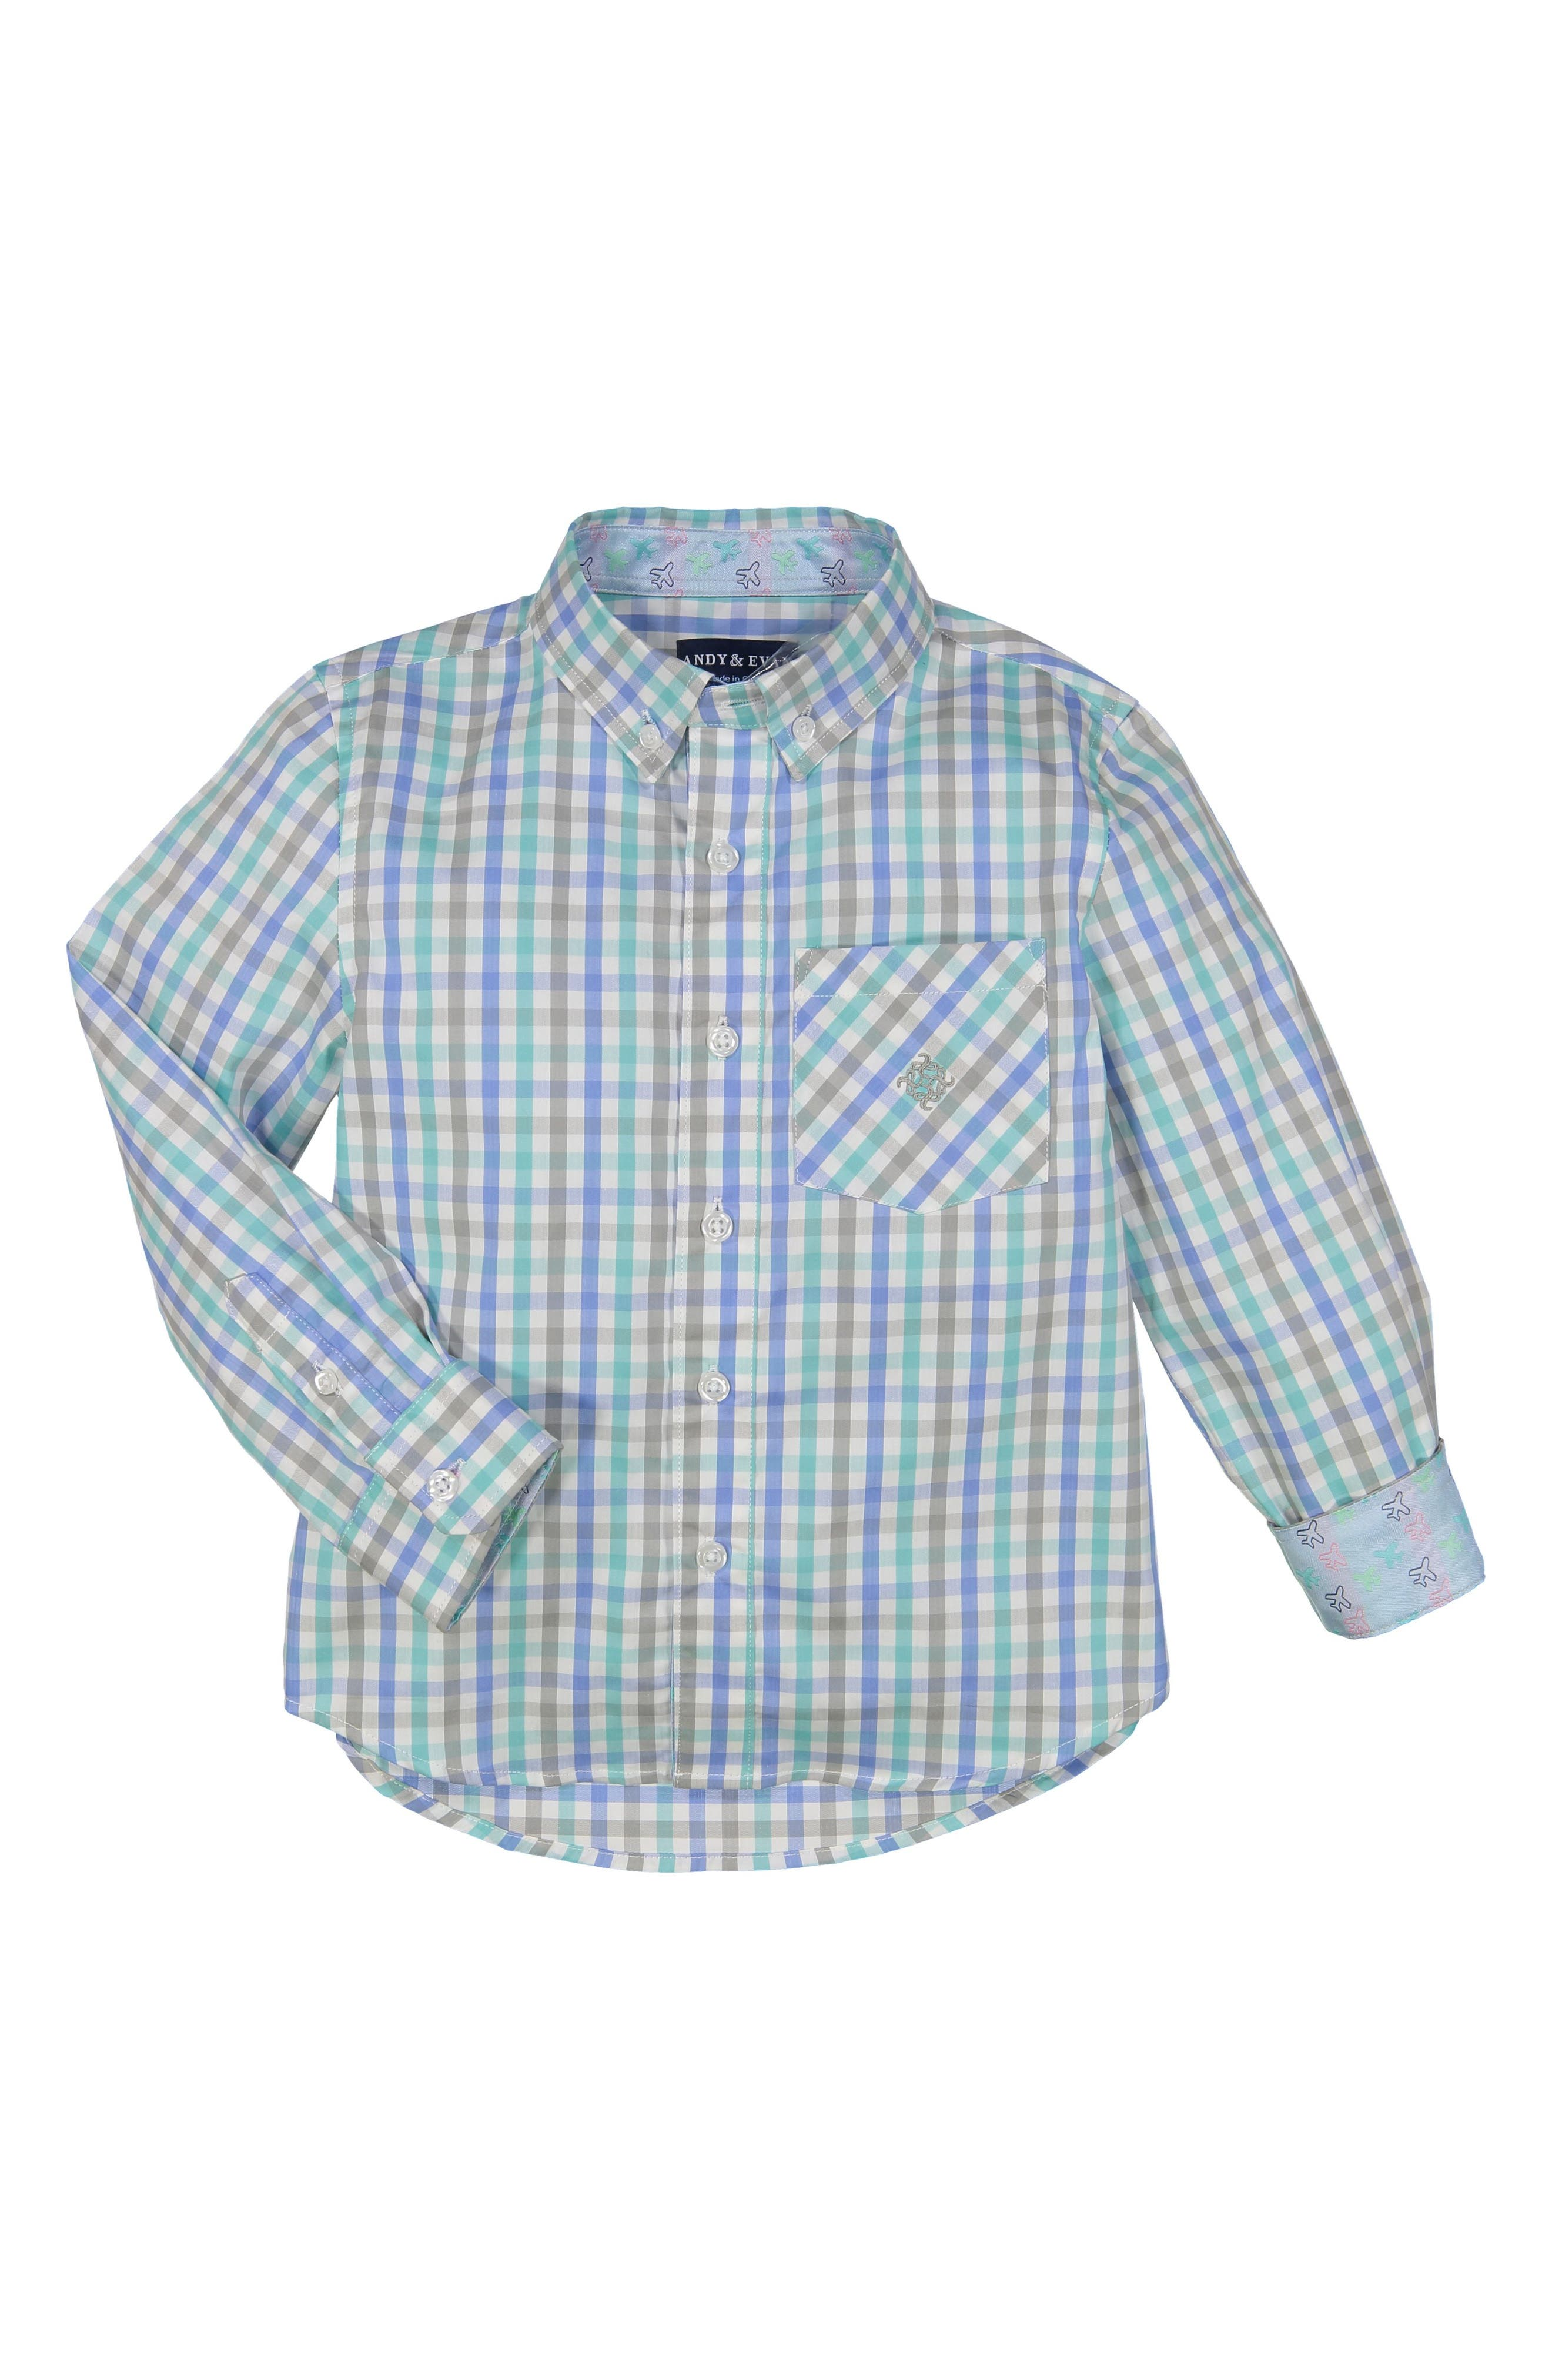 Andy & Evan Check Sport Shirt (Toddler Boys)